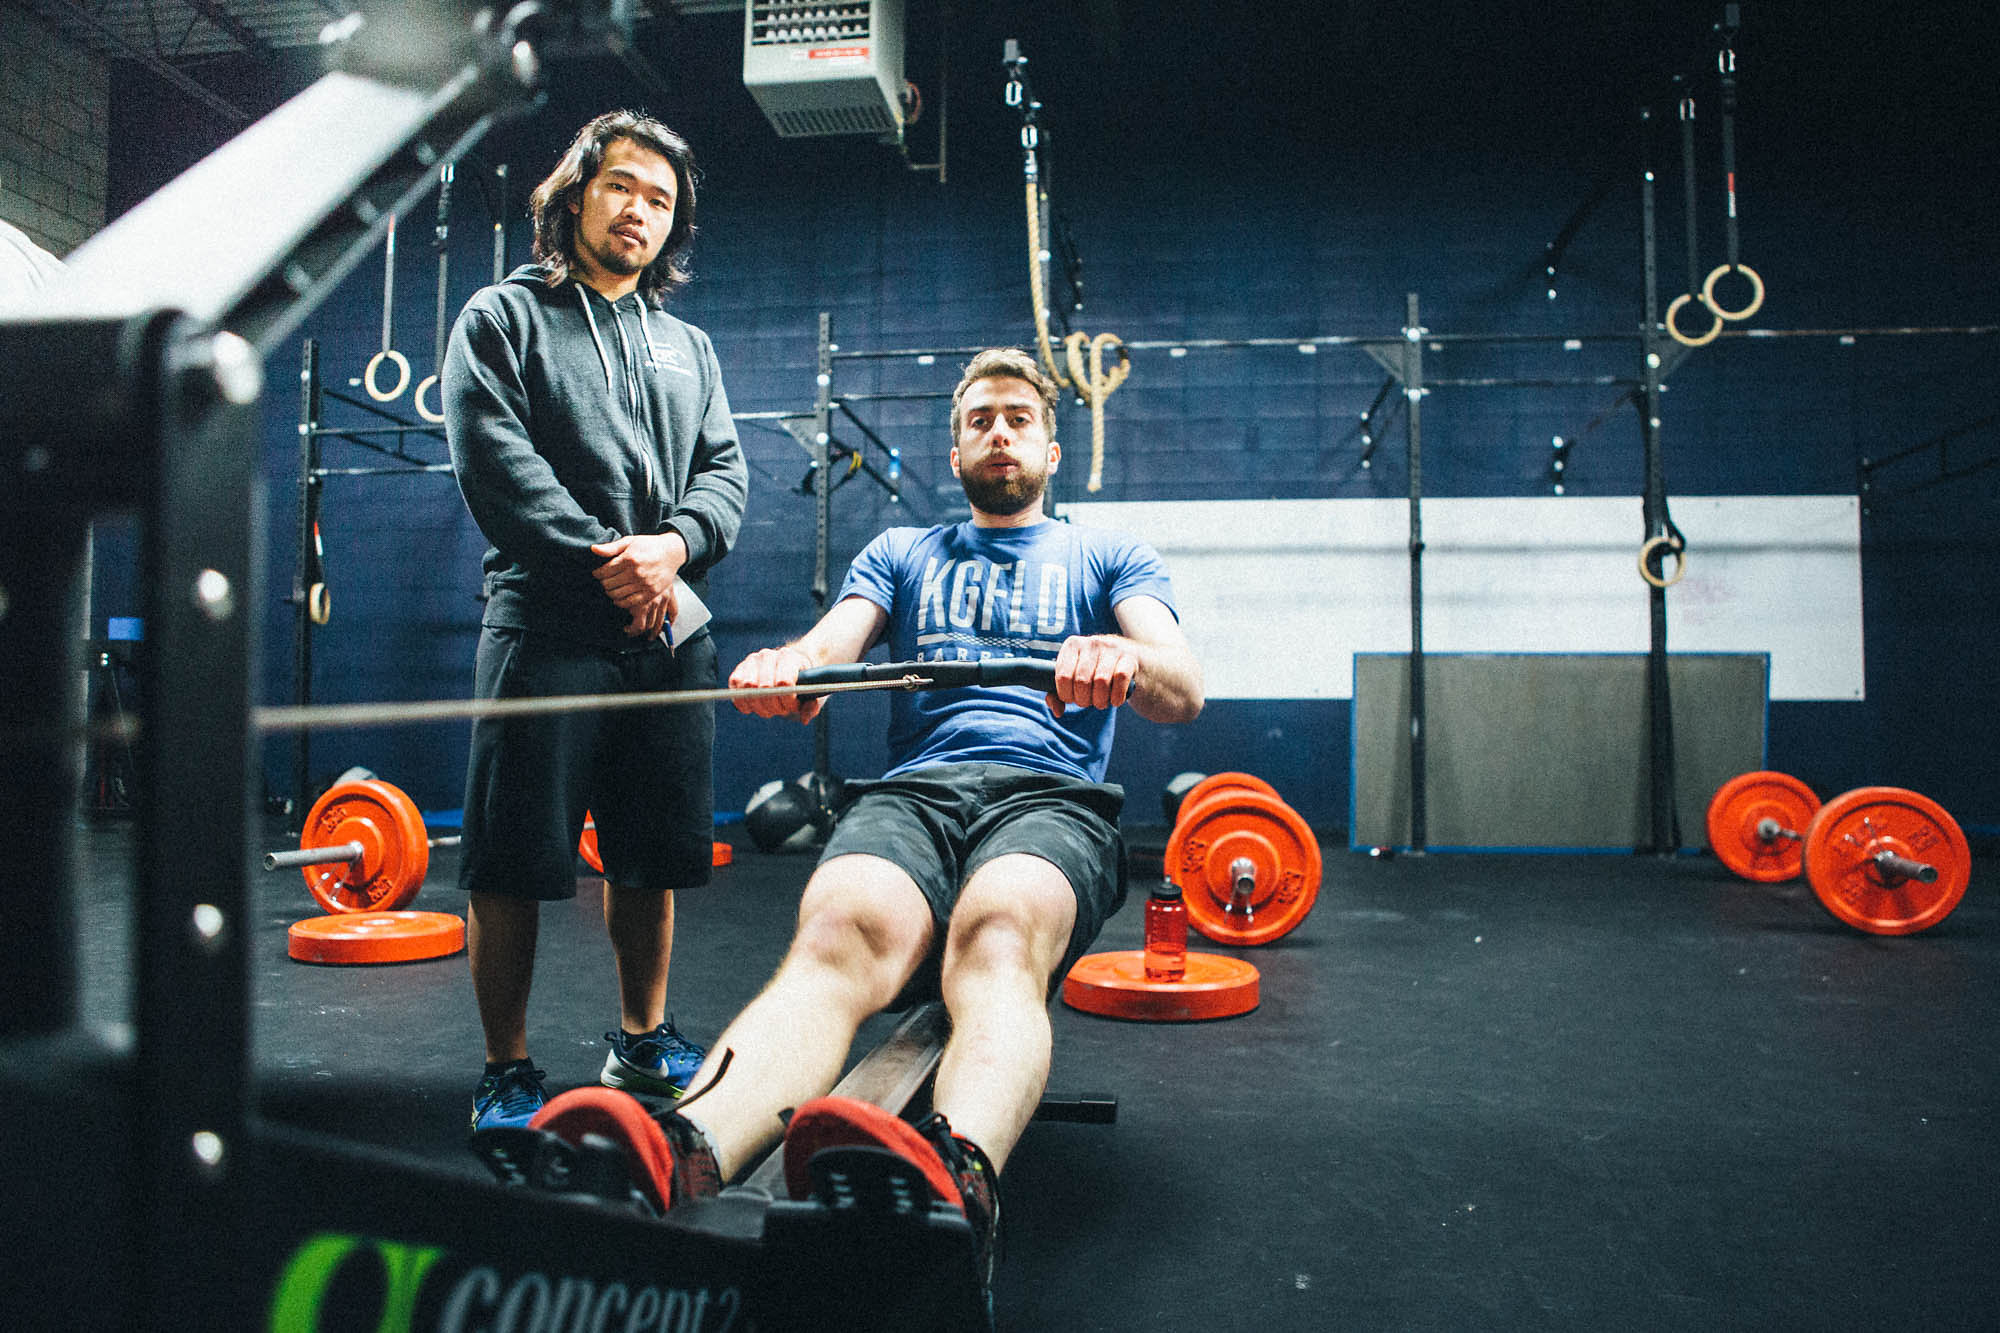 Jeremy is a proud member of CrossFit Kingfield and writes often about his experience in fitness, nutrition, mental toughness and our community on his blog Man Meets Goat (manmeetsgoat.com).